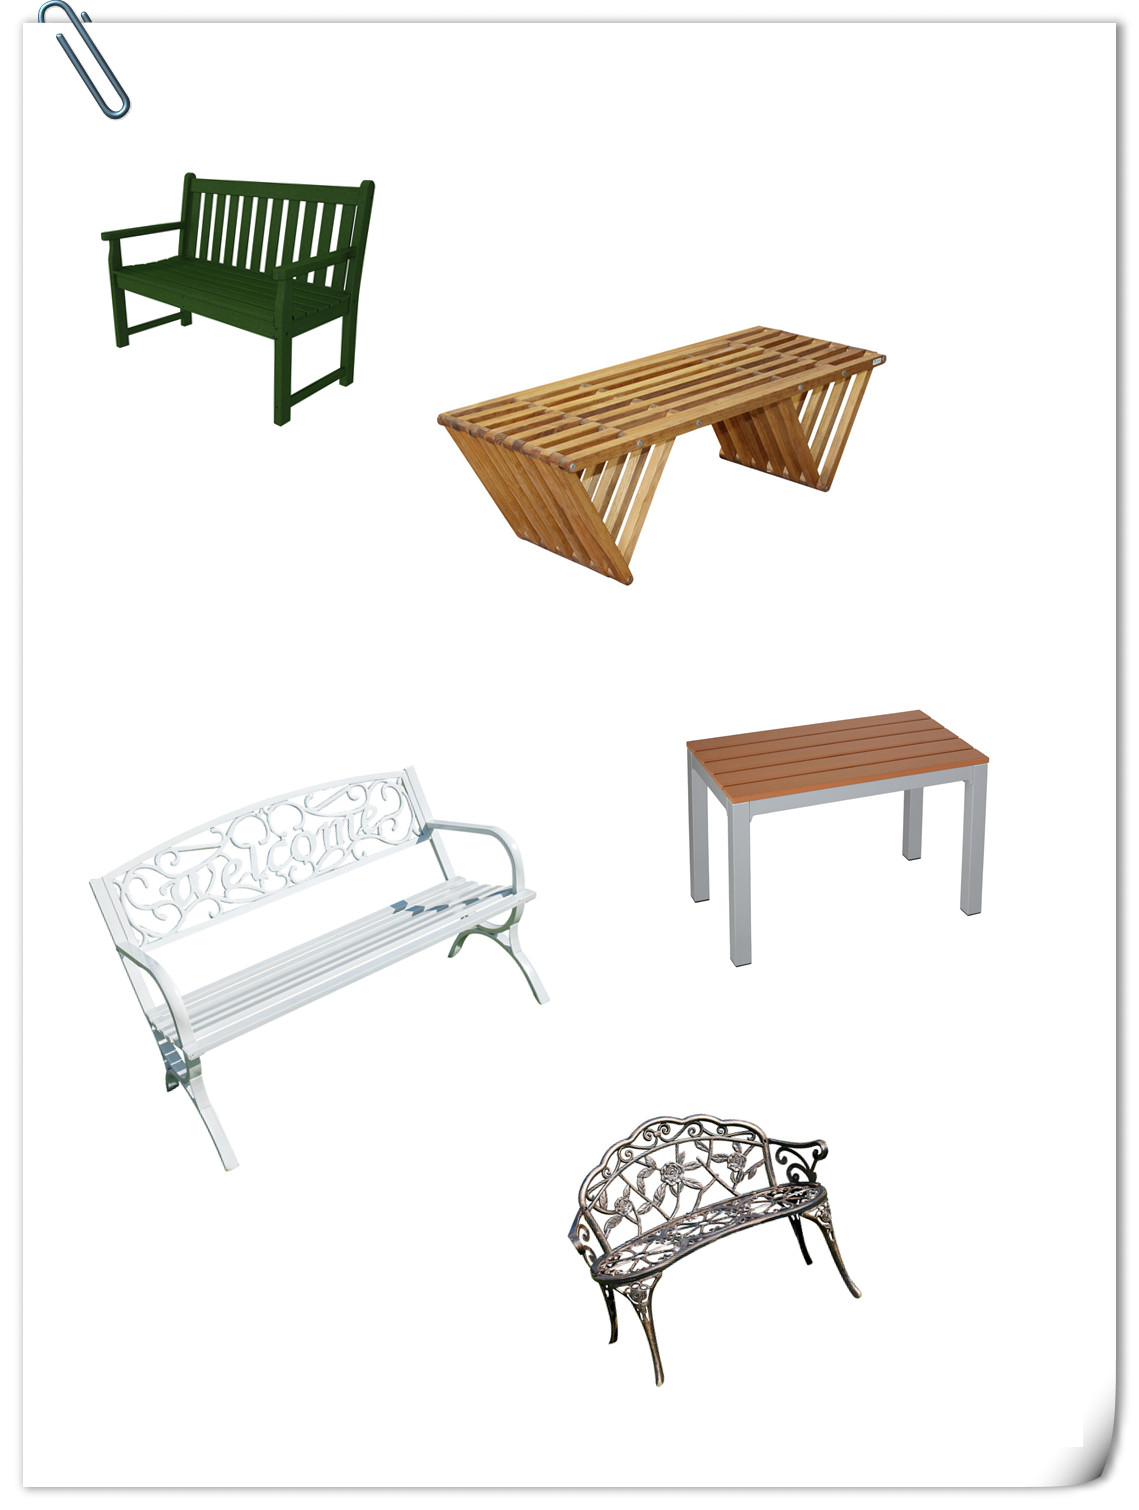 5 Robust and Beautiful Outdoor Benches